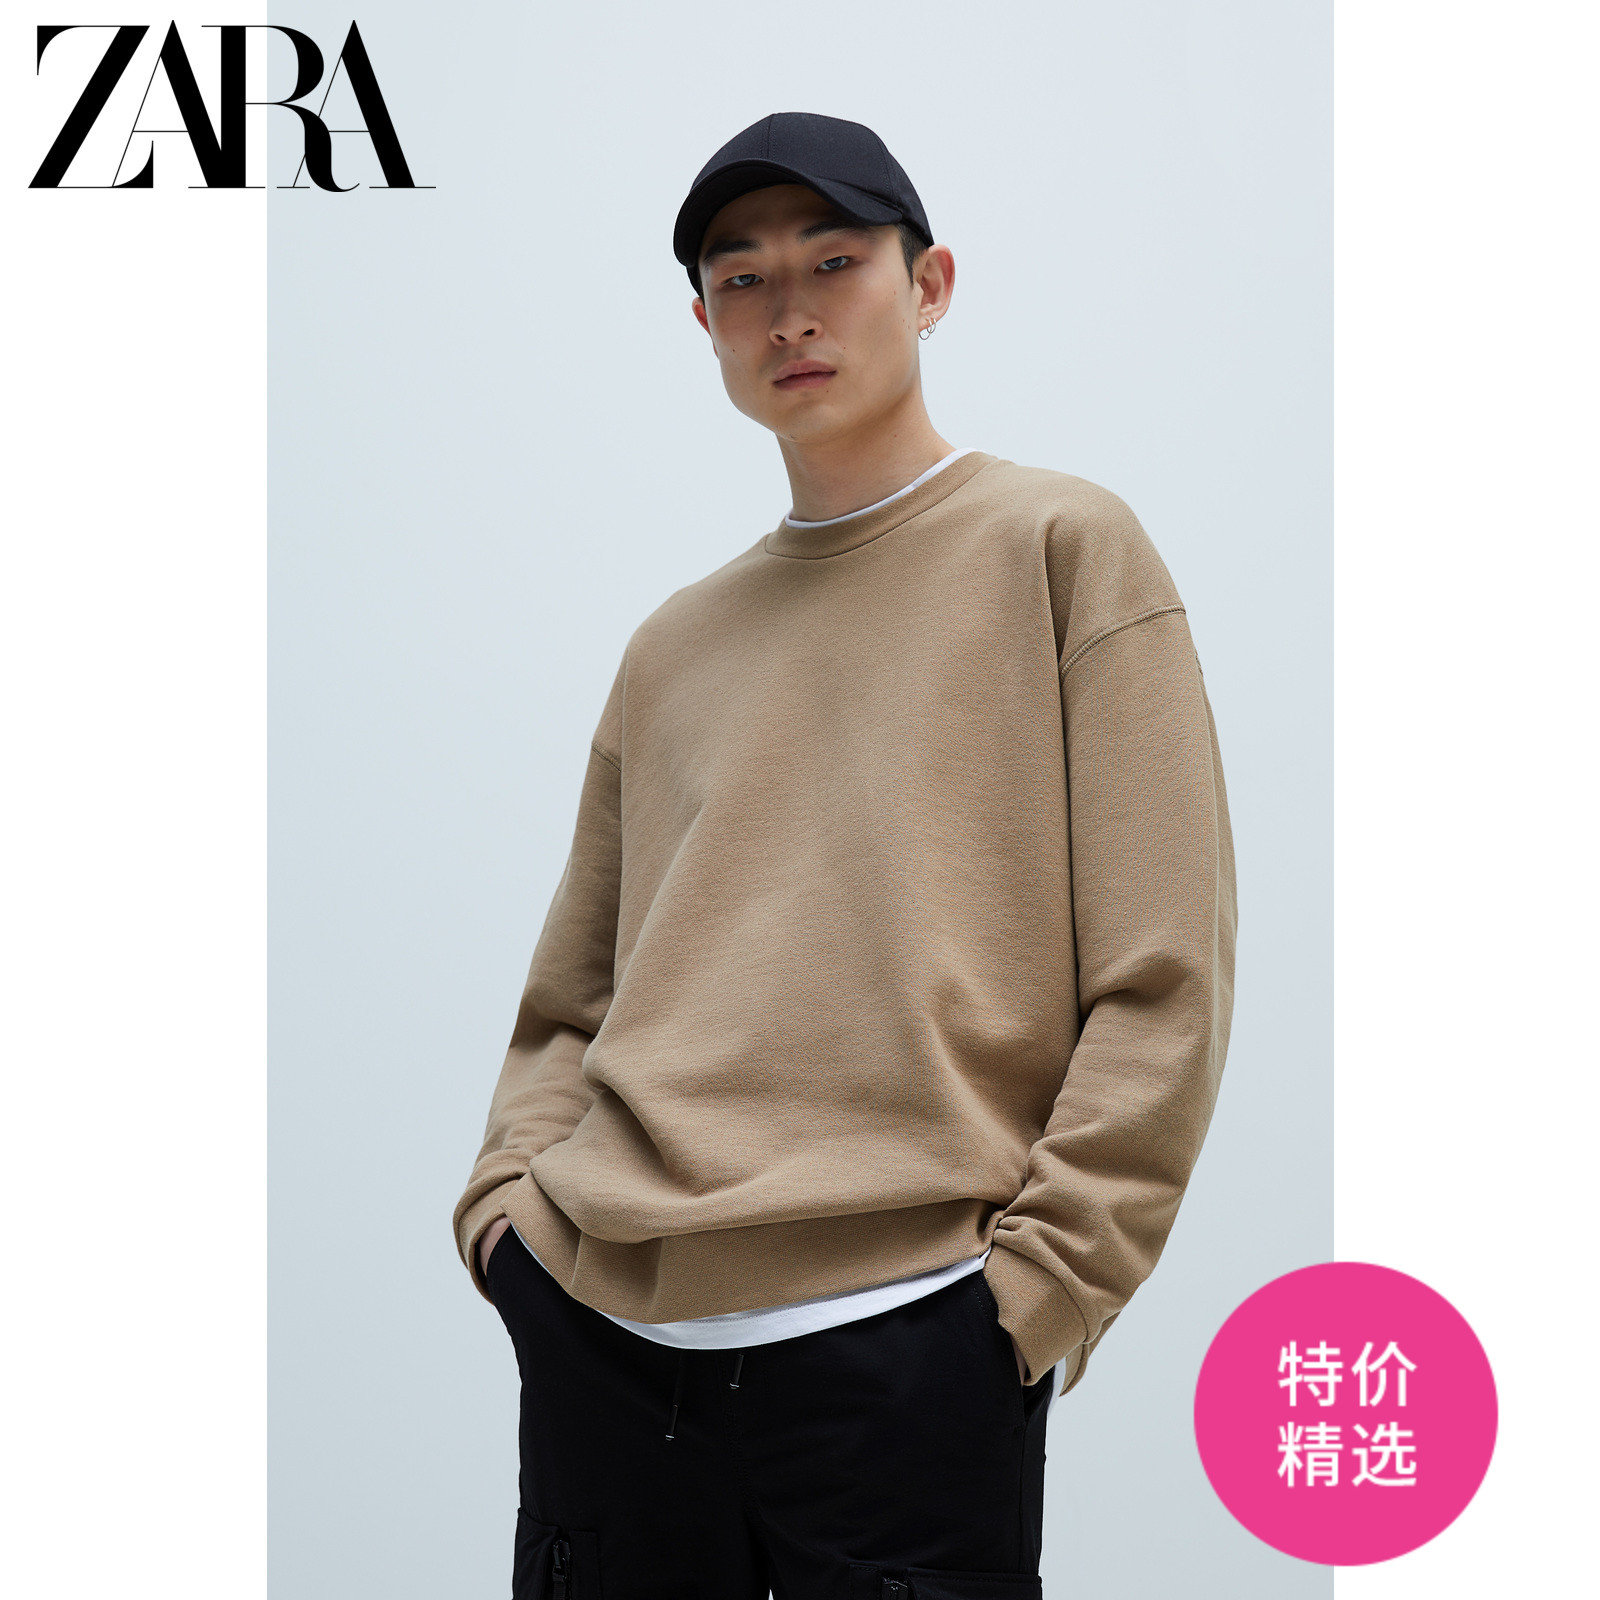 Zara new men's patchwork plus Sweatshirt sweater 04087408707